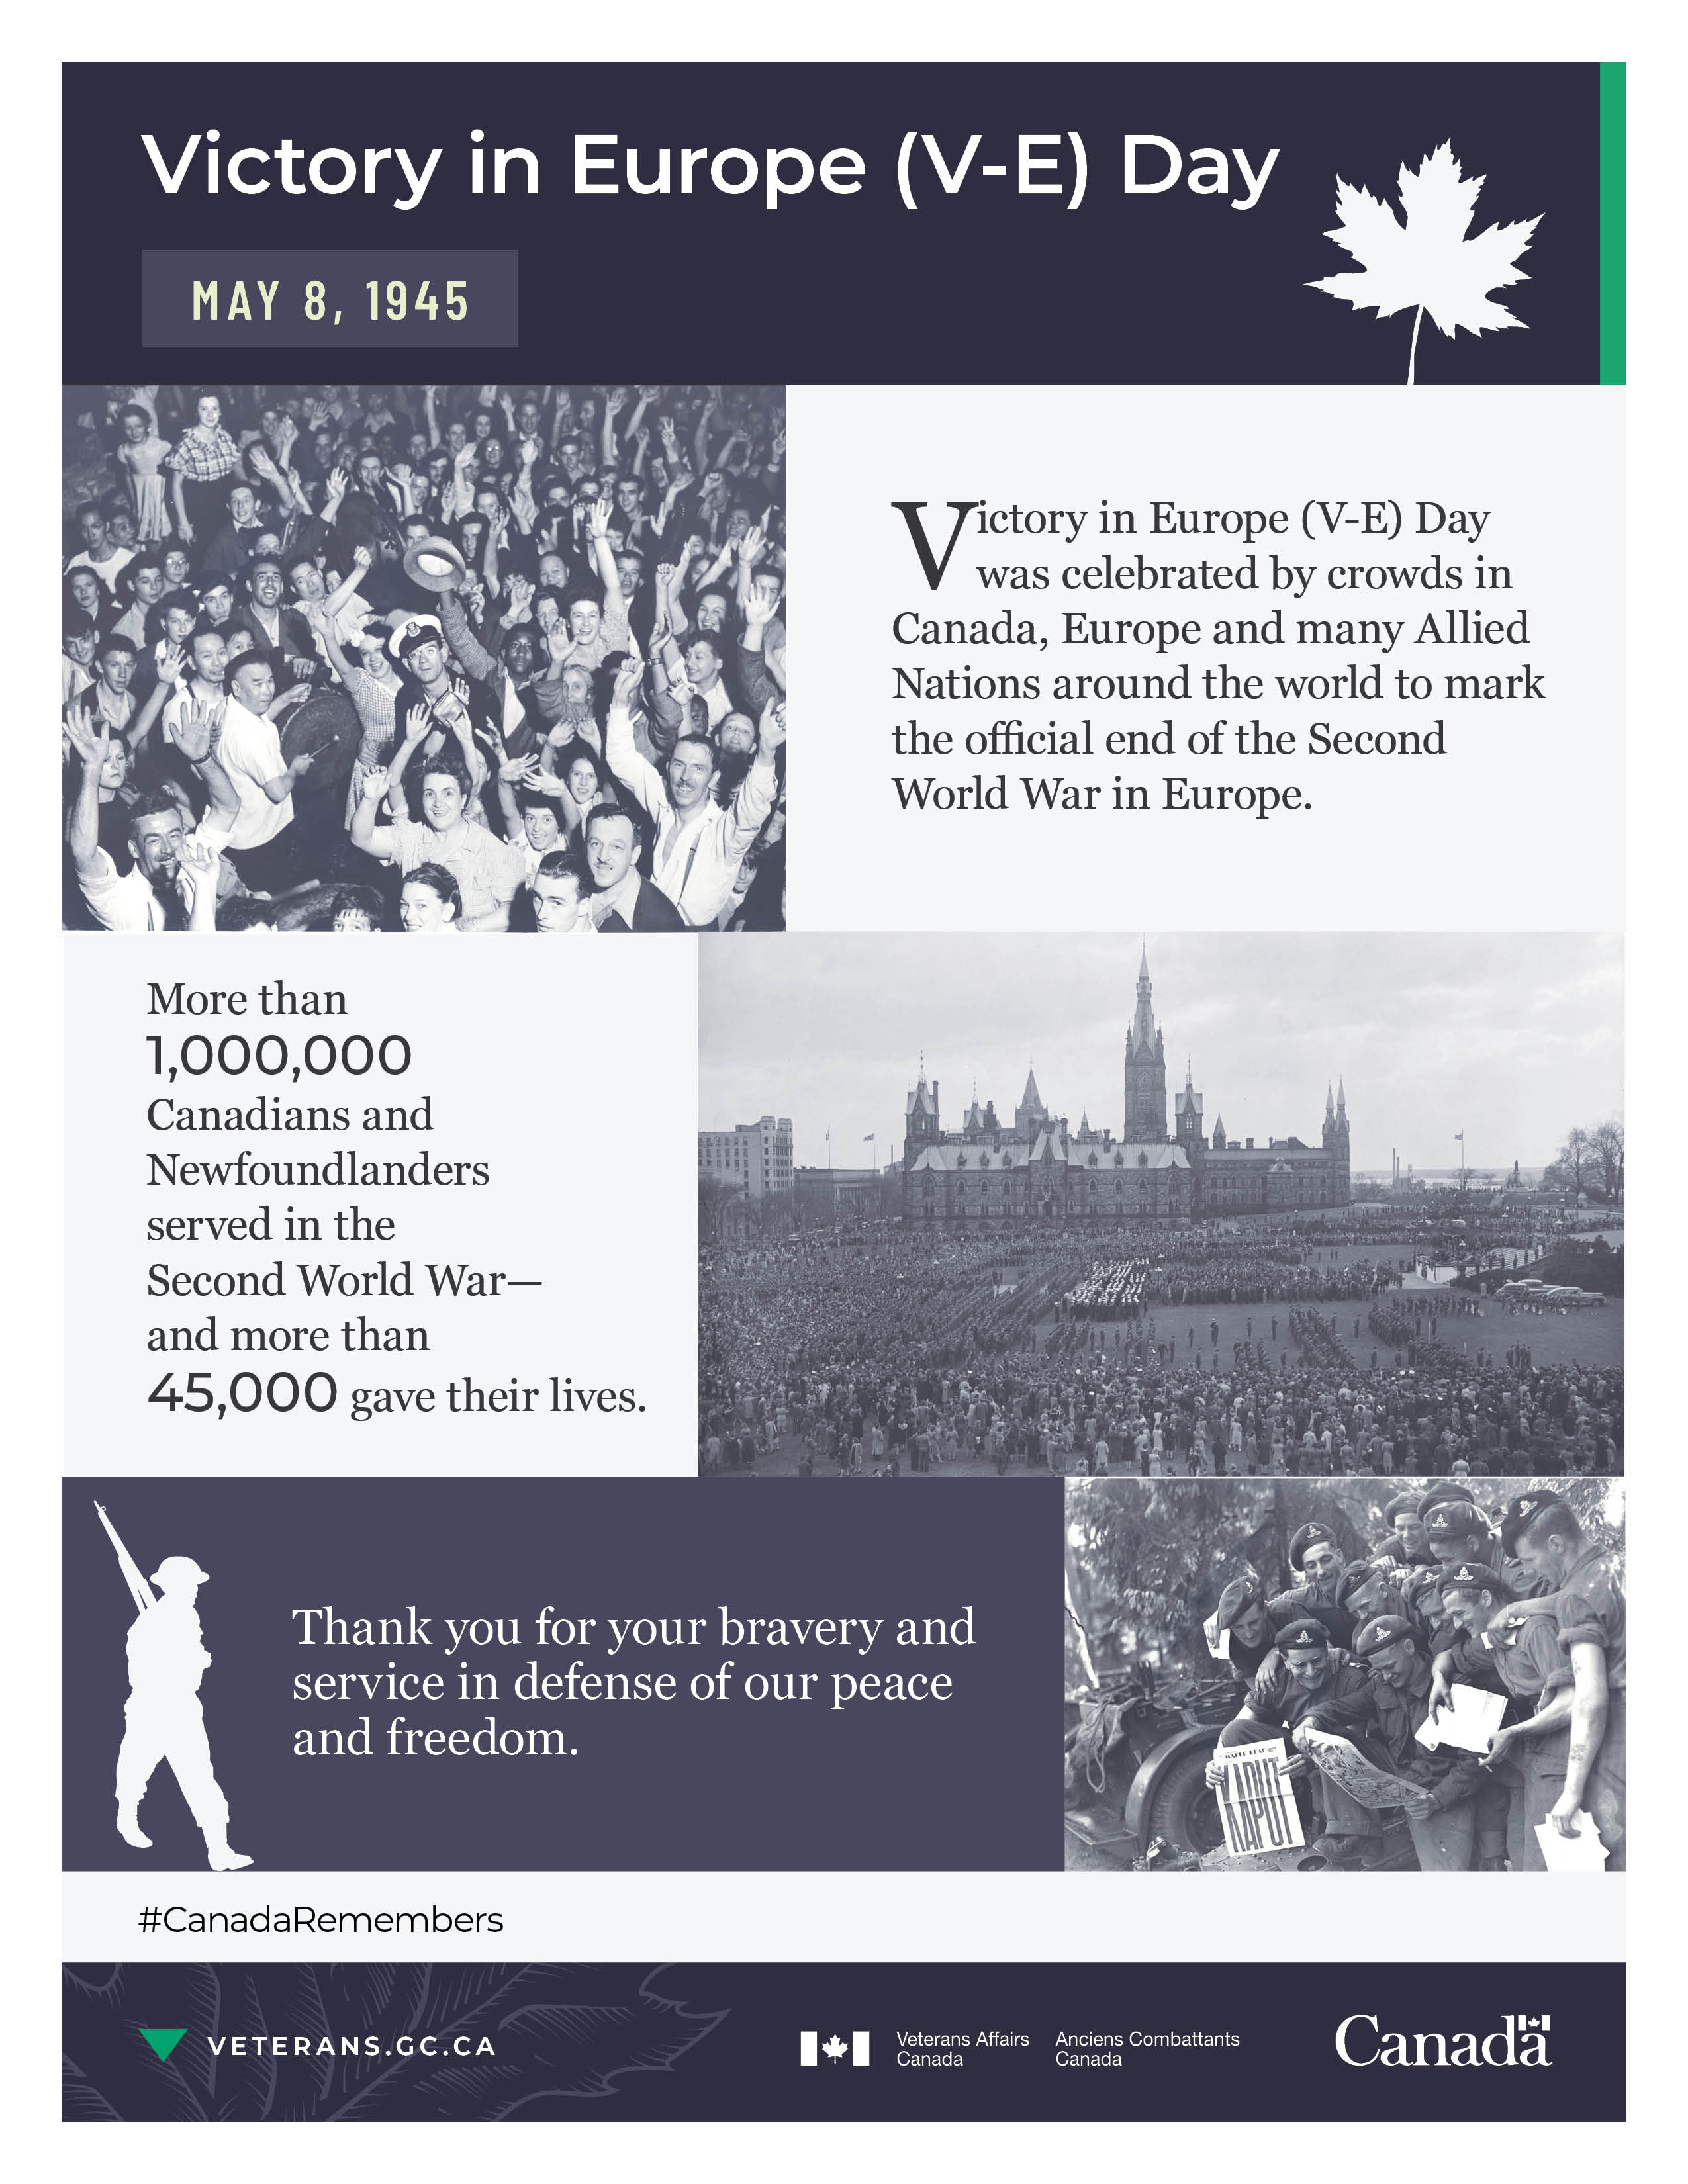 Victory in Europe (V-E) Day